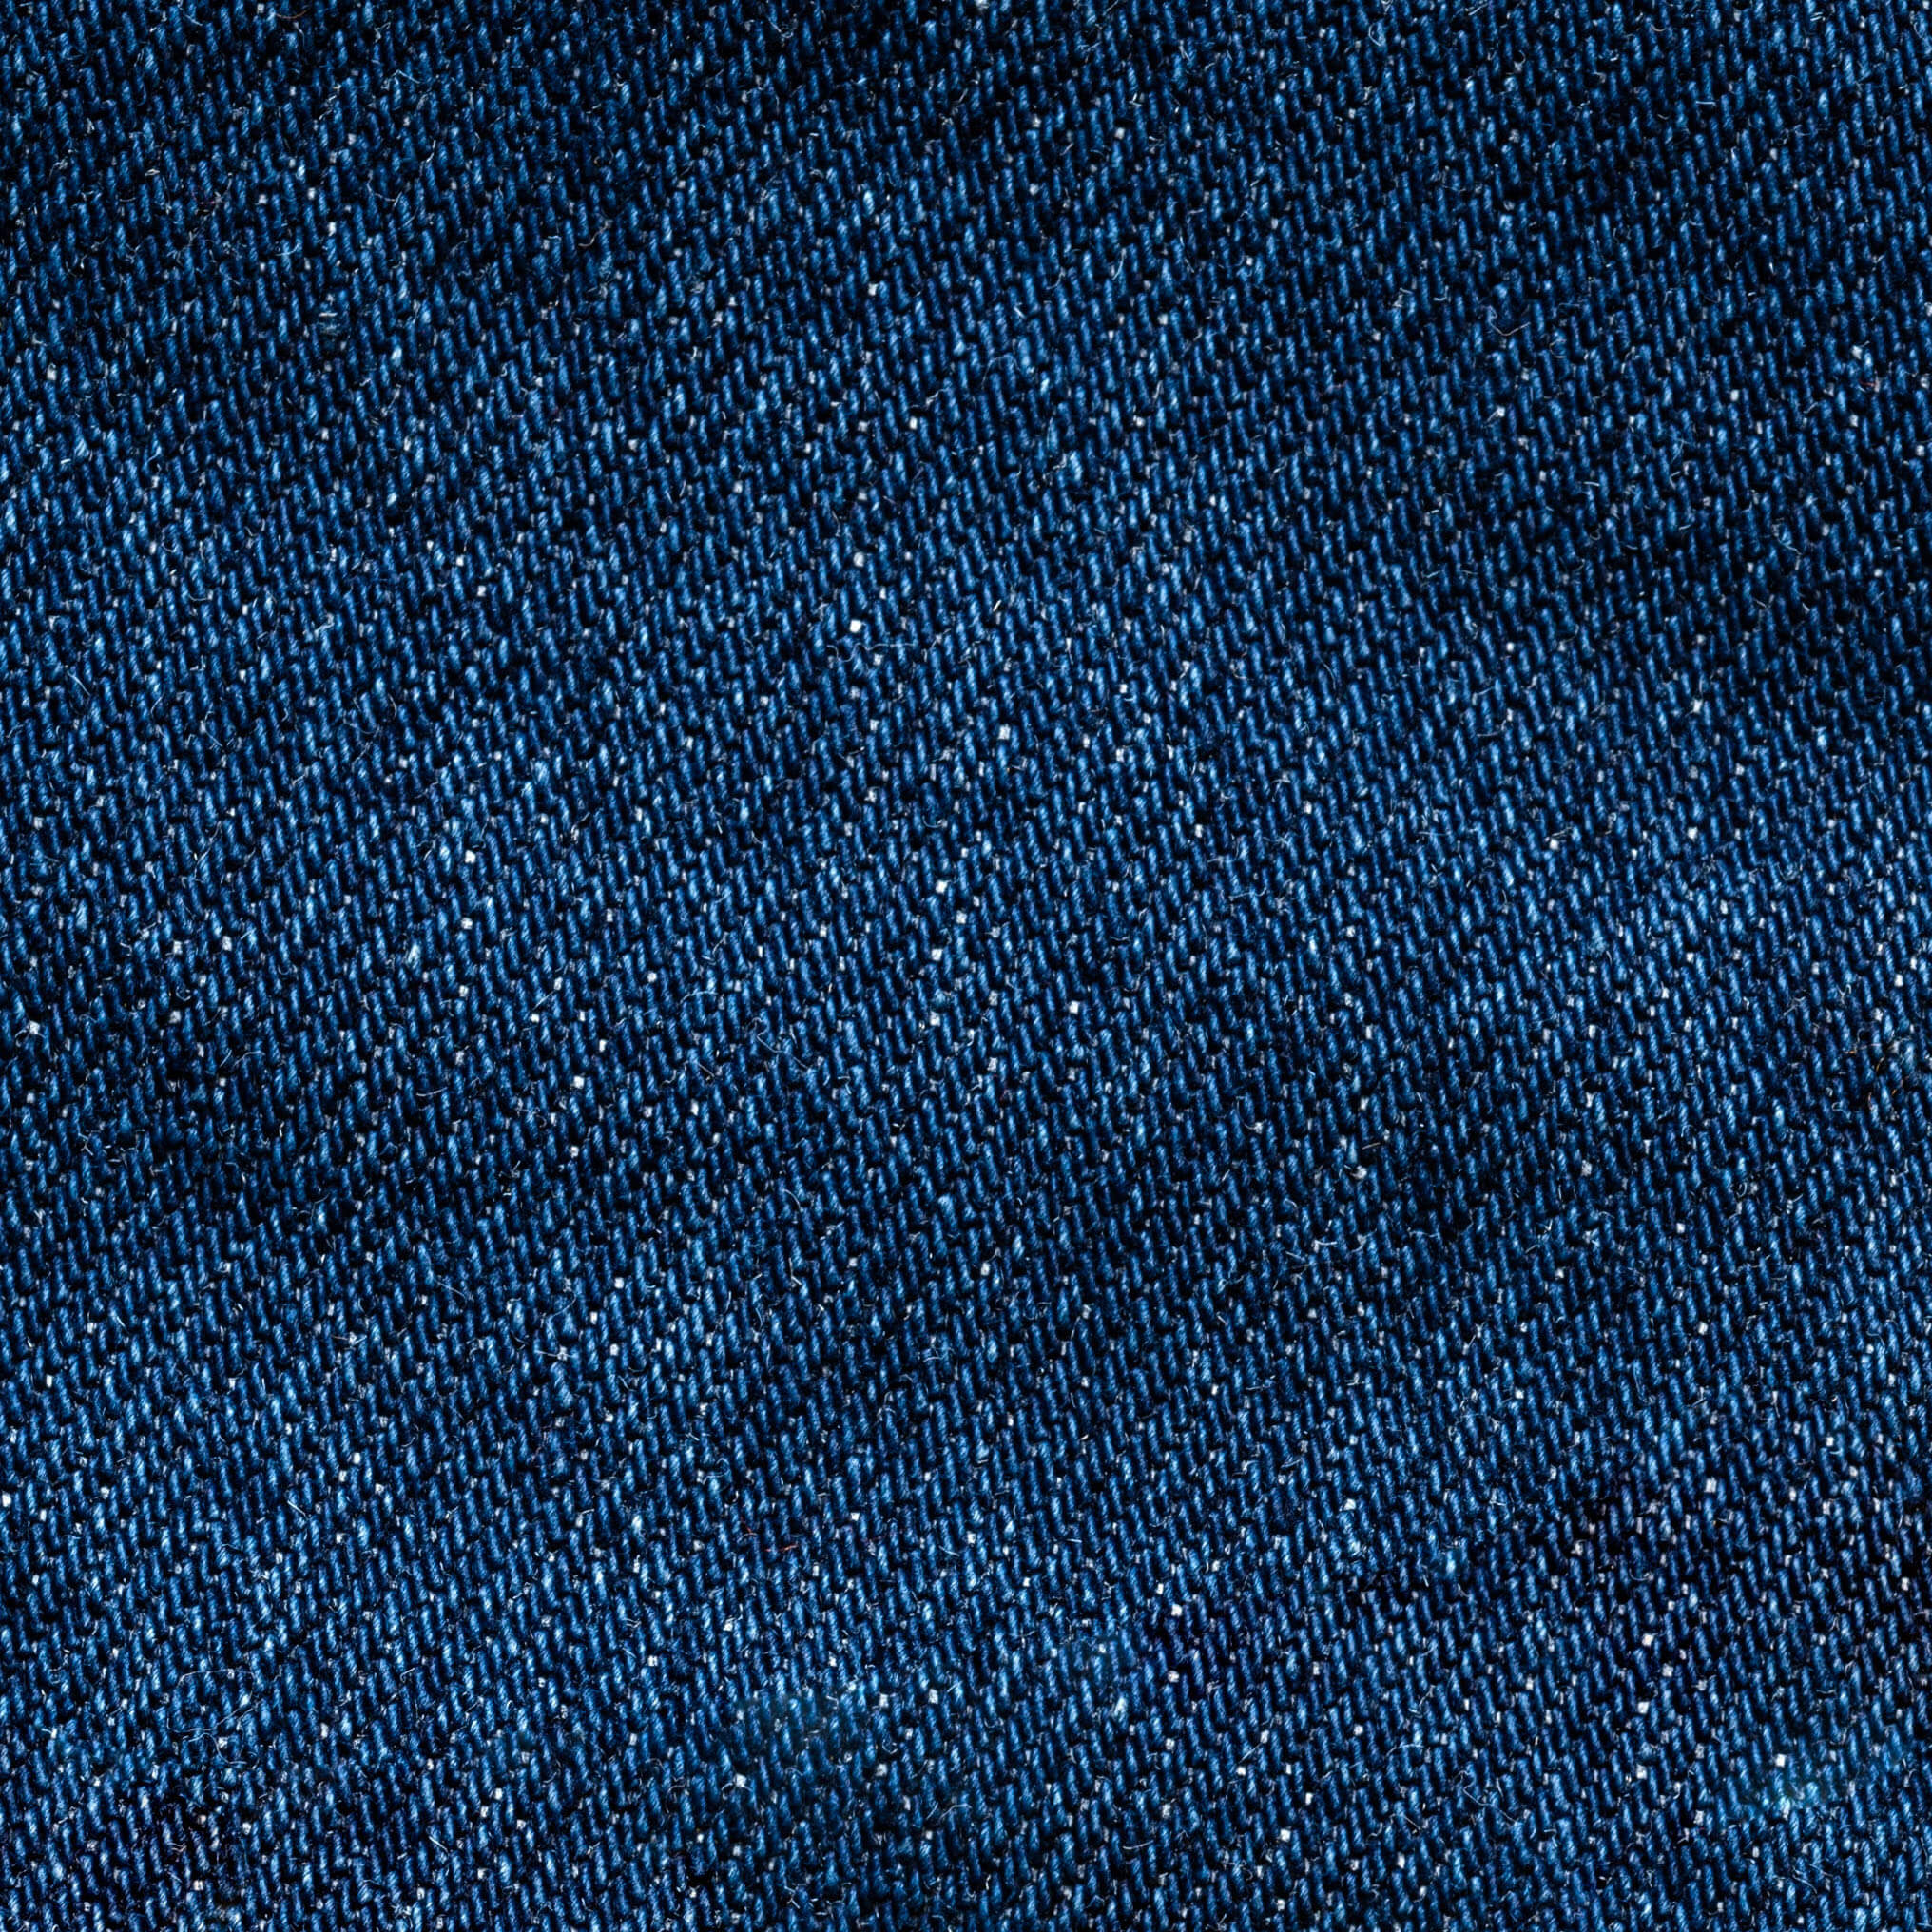 Denim-1Swatch